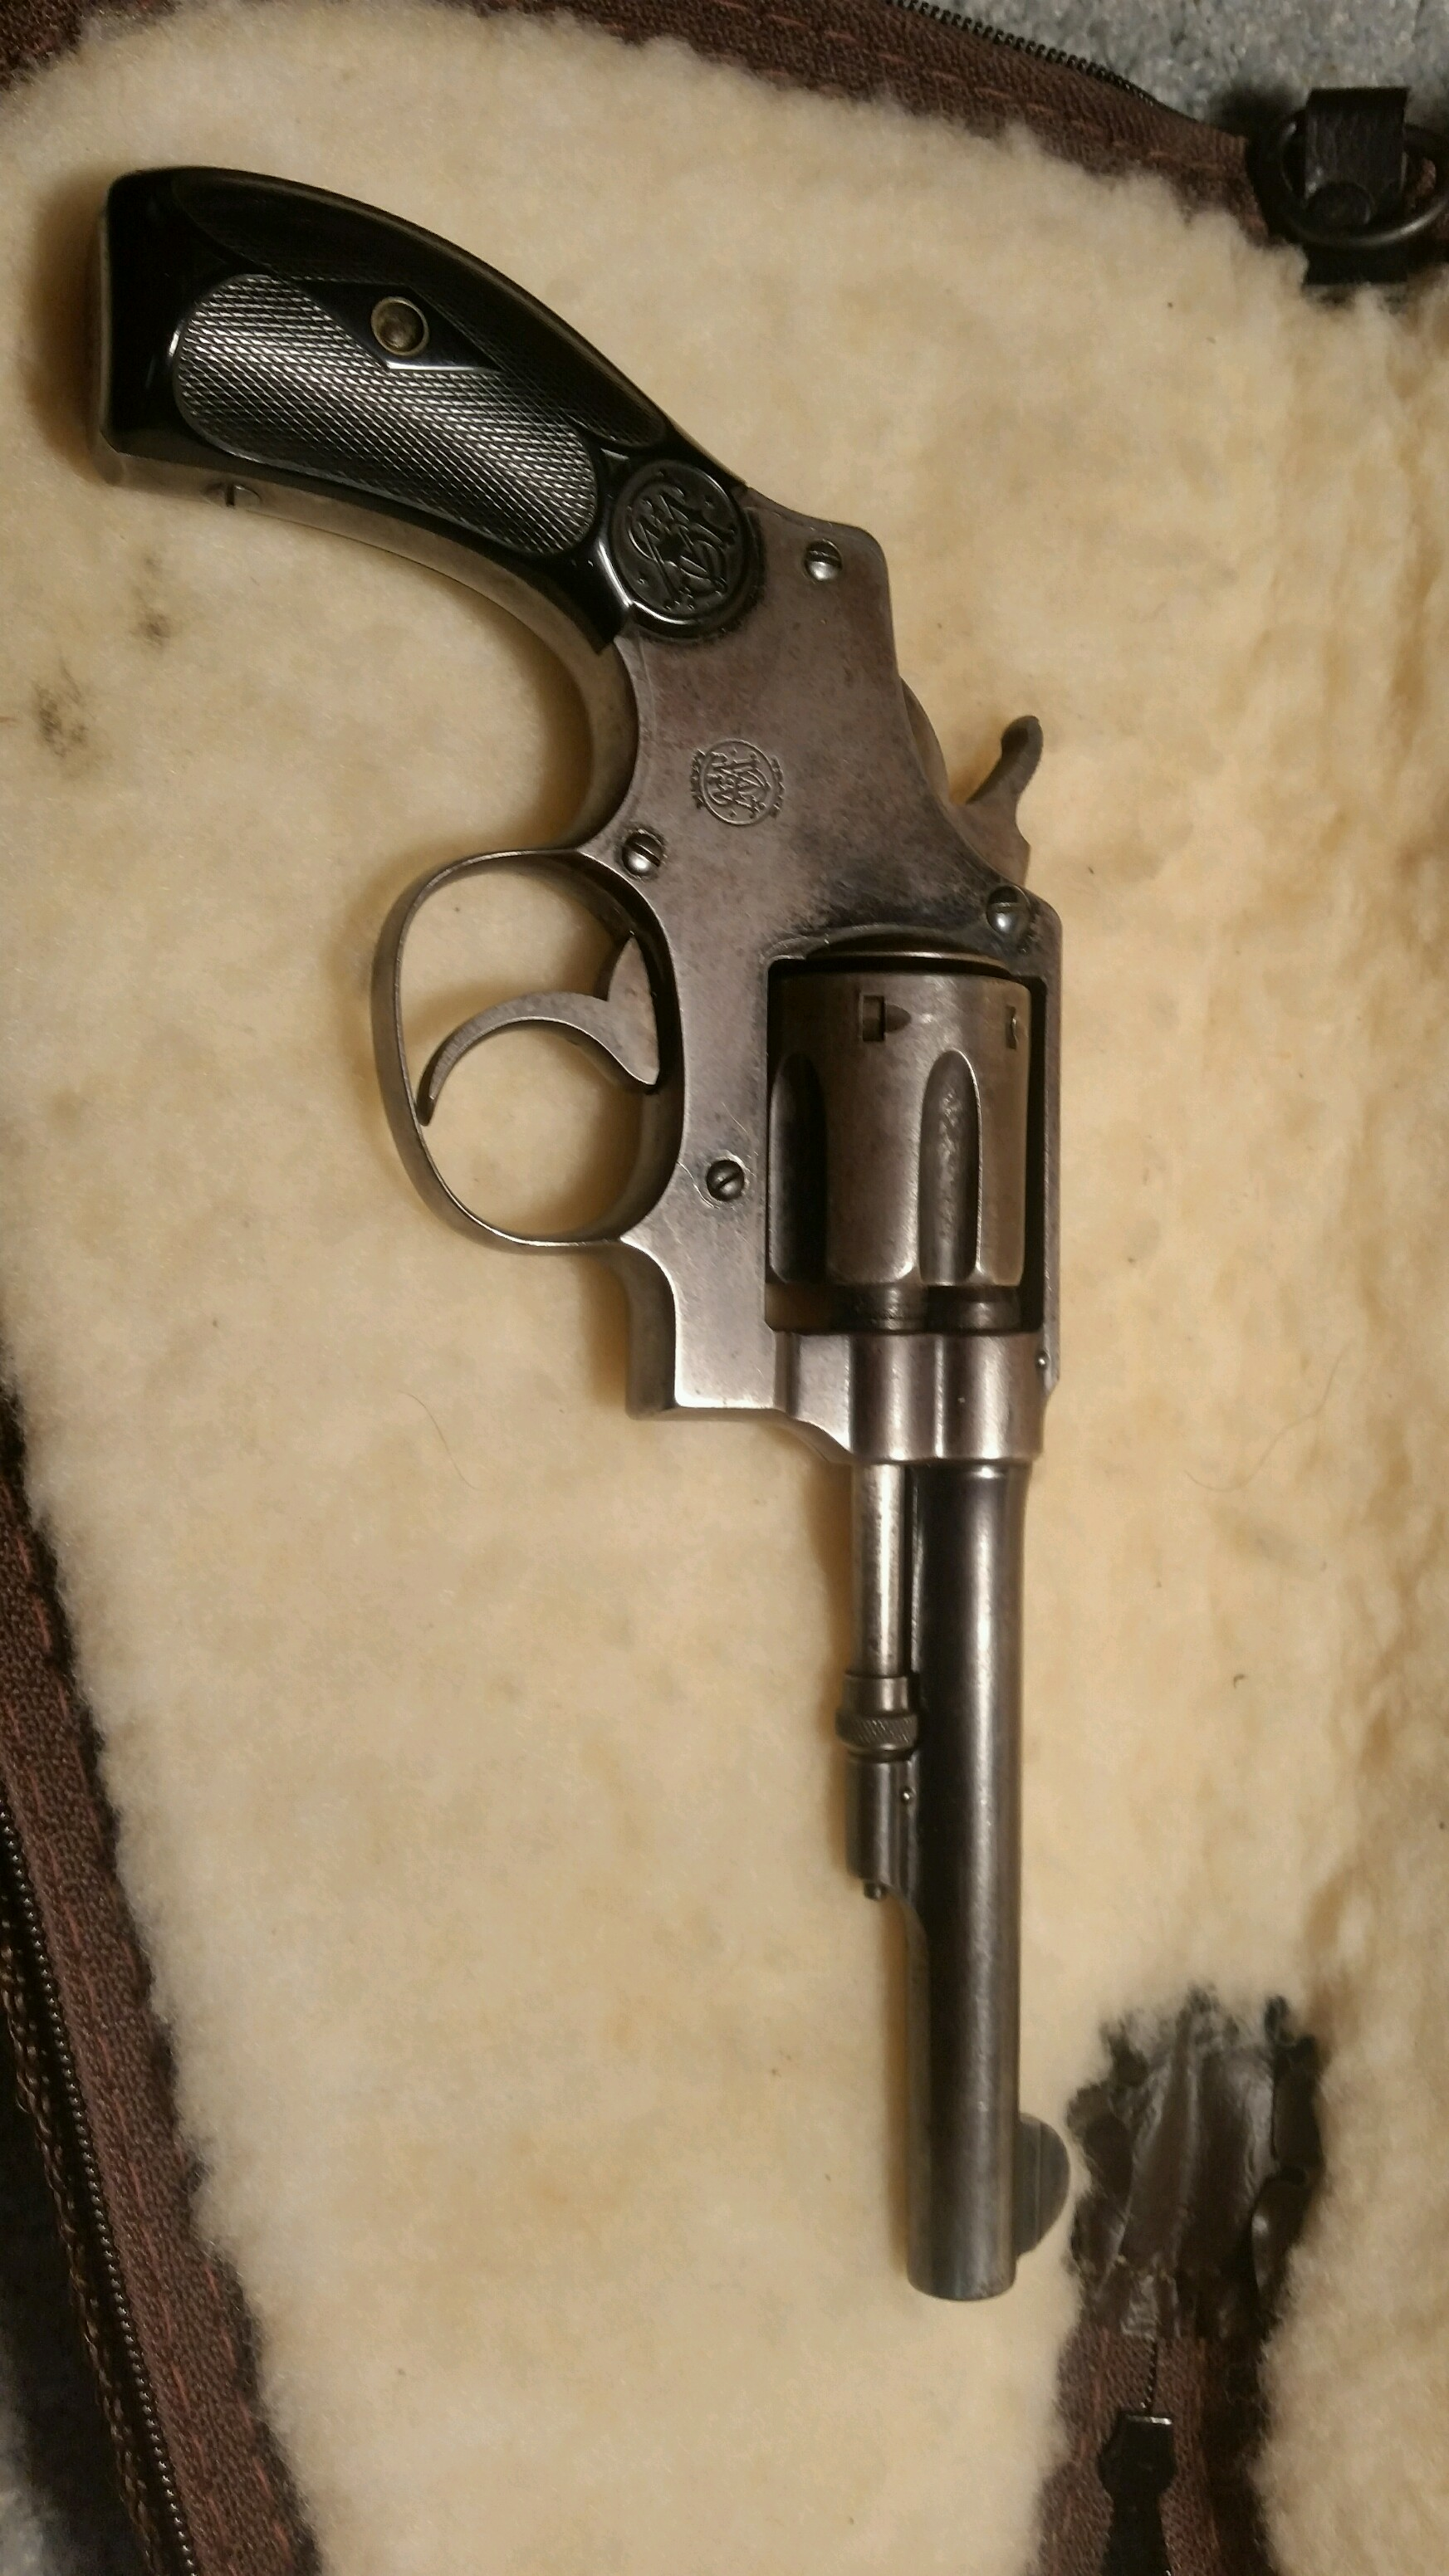 S&W 32 Long CTG revolver info  - Page 2